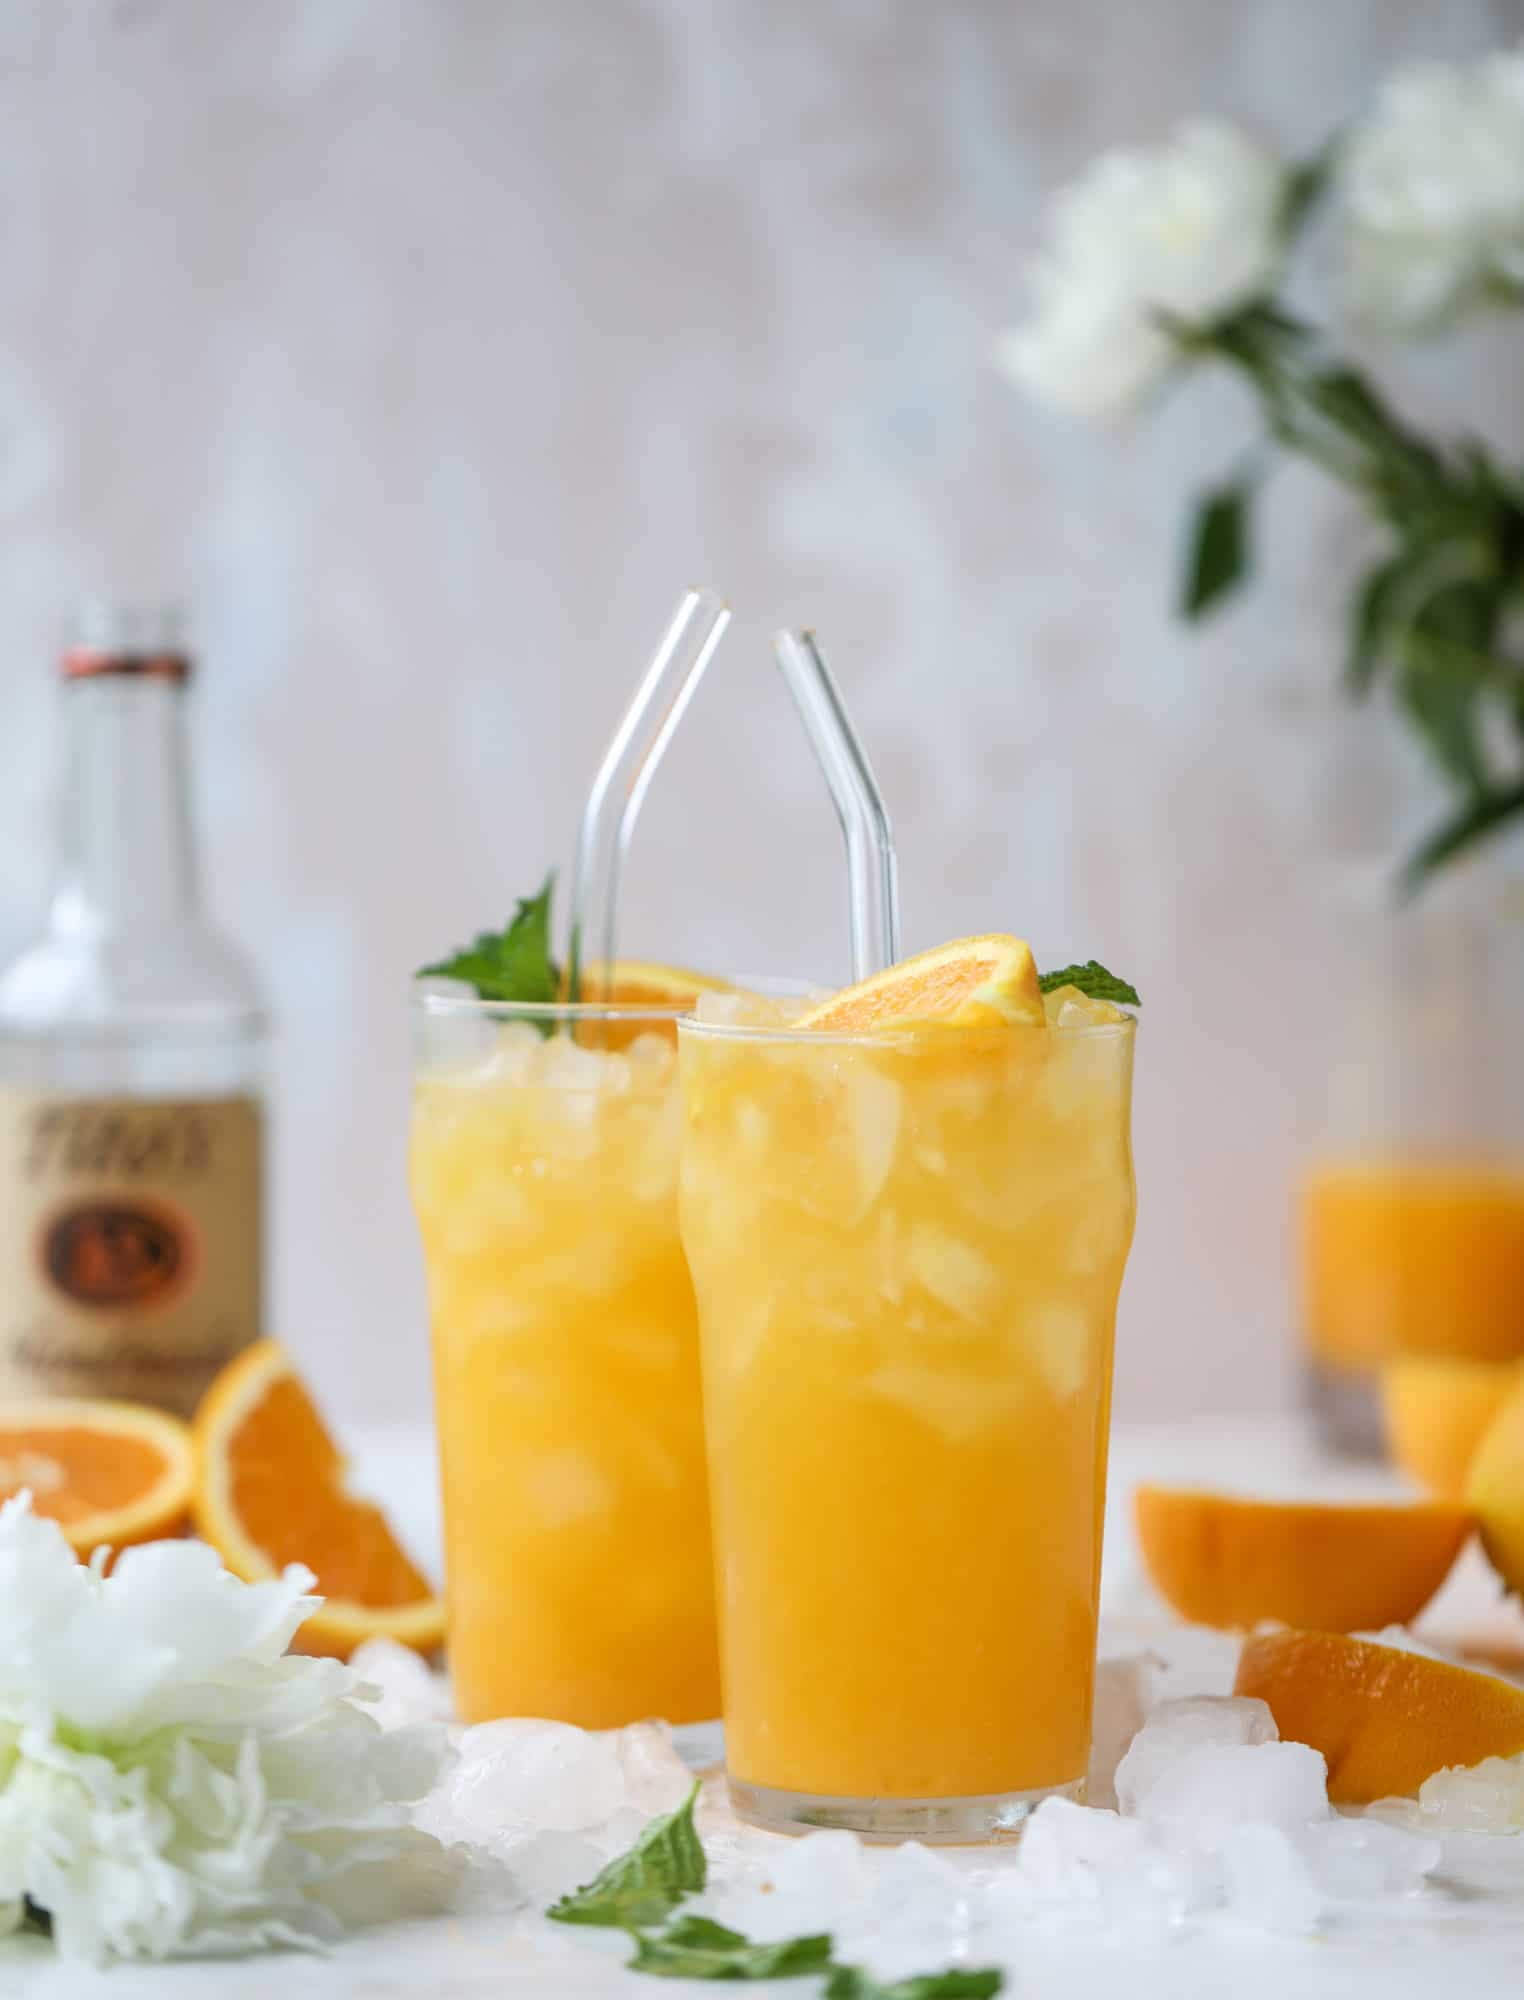 This orange crush is a copycat cocktail from the ones served in Ocean City, Maryland at the beach all summer long! It's one entire freshly squeezed orange with vodka and lemon lime soda and it tastes like heaven. Super refreshing and perfect for summer. I howsweeteats.com #orange #crush #cocktail #ocean #city #vodka